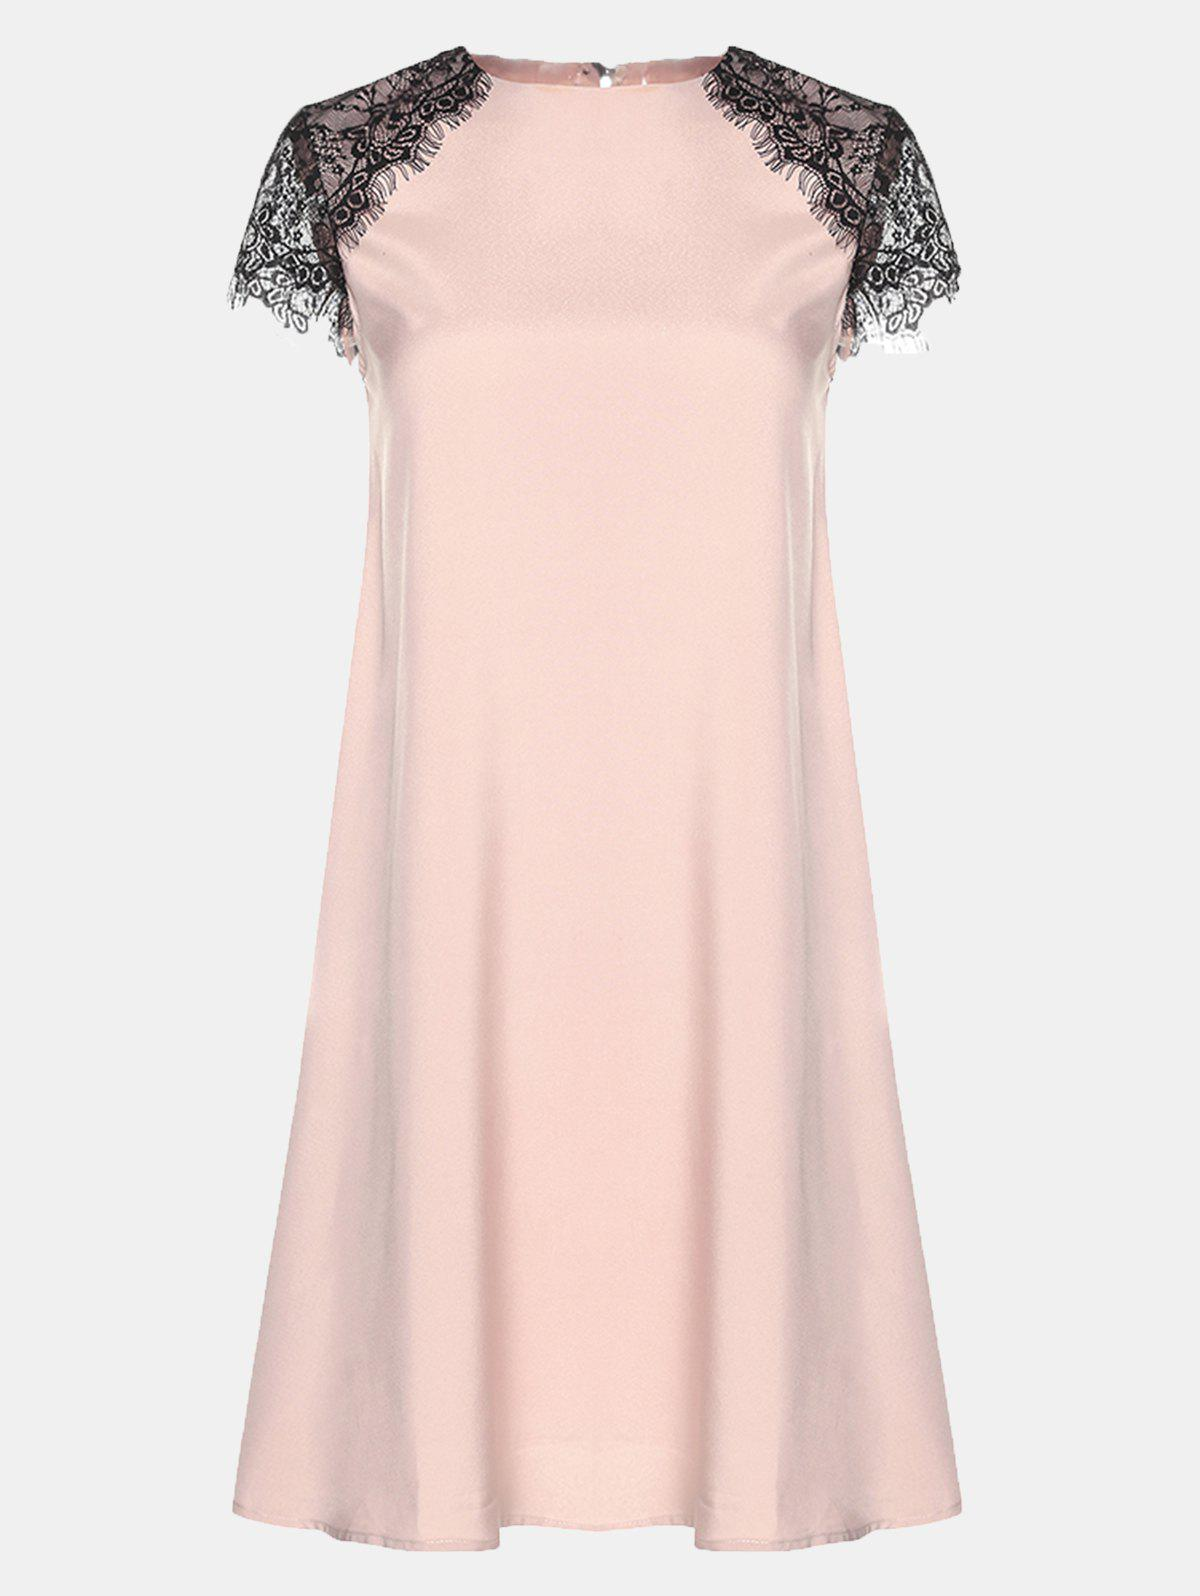 Round Collar Lace Short Sleeve Loose A-line Dress - BARE PINK M